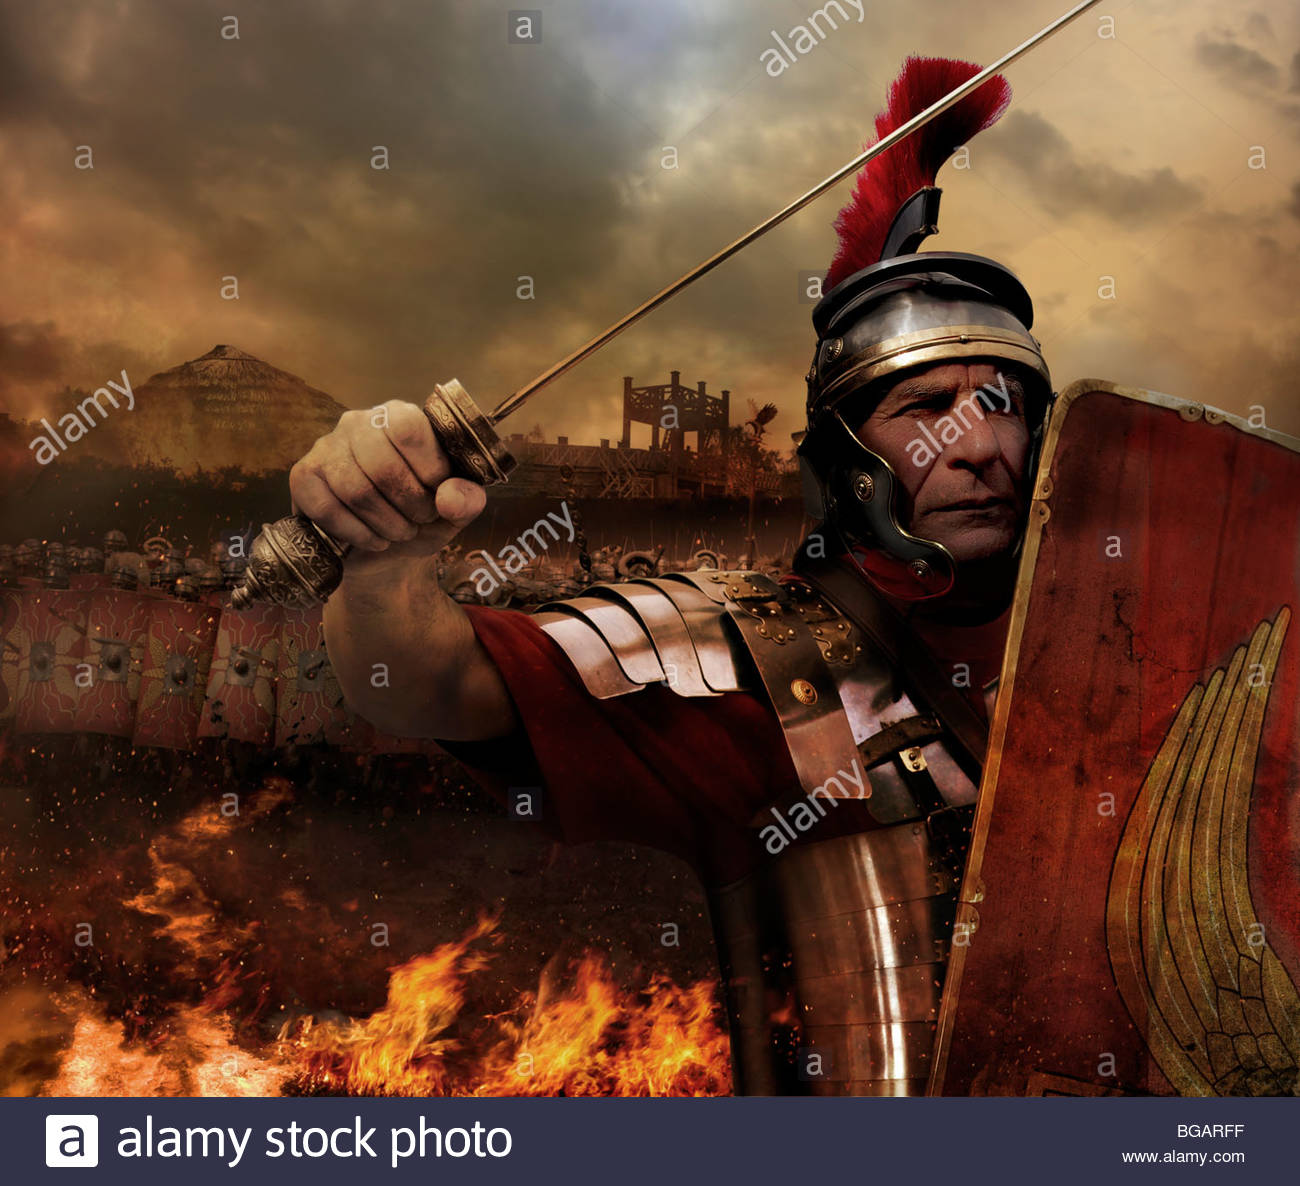 a mean looking roman soldier charging into battle stock photo